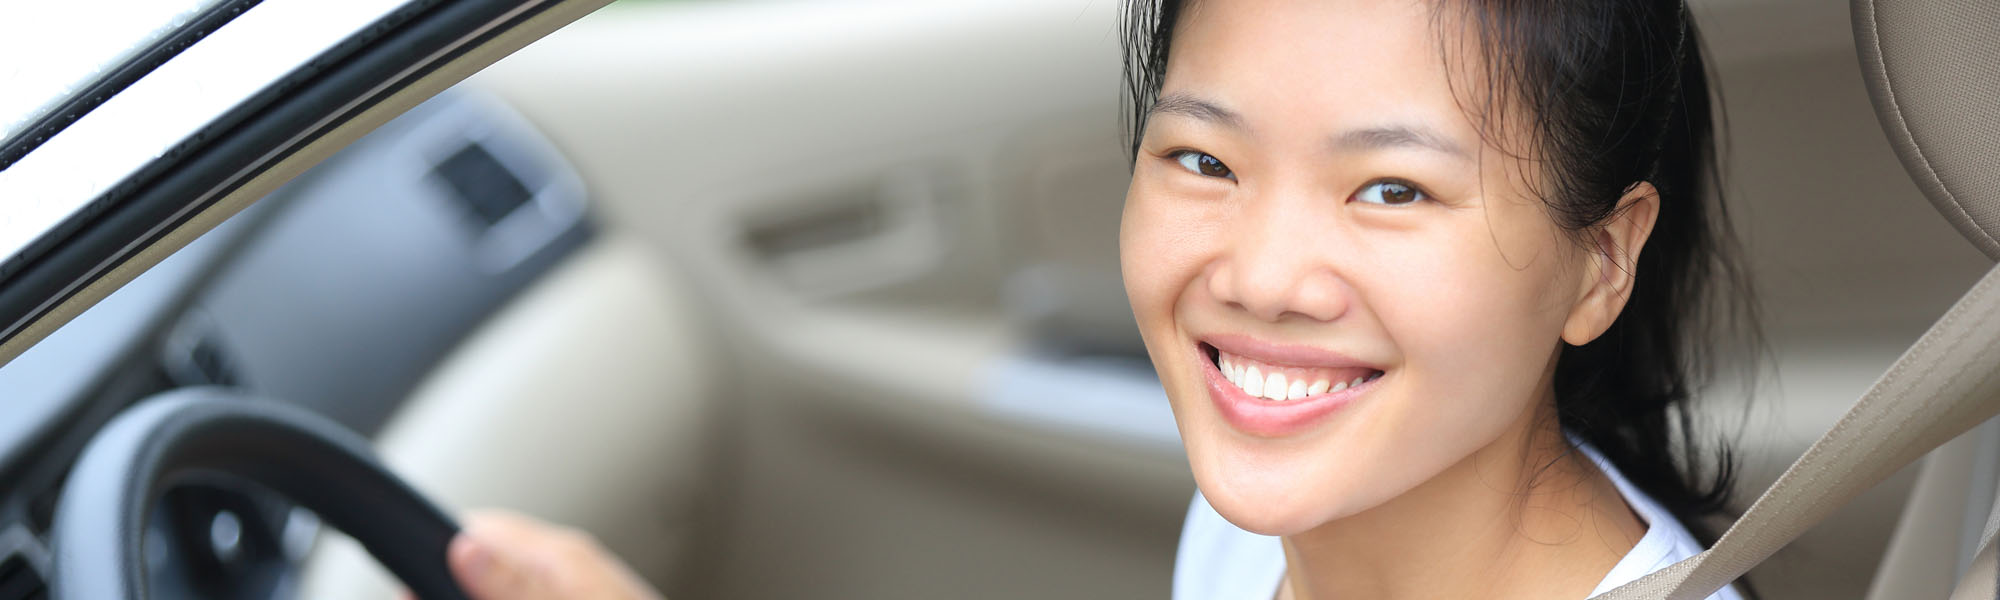 Happy Woman Smiling While Driving